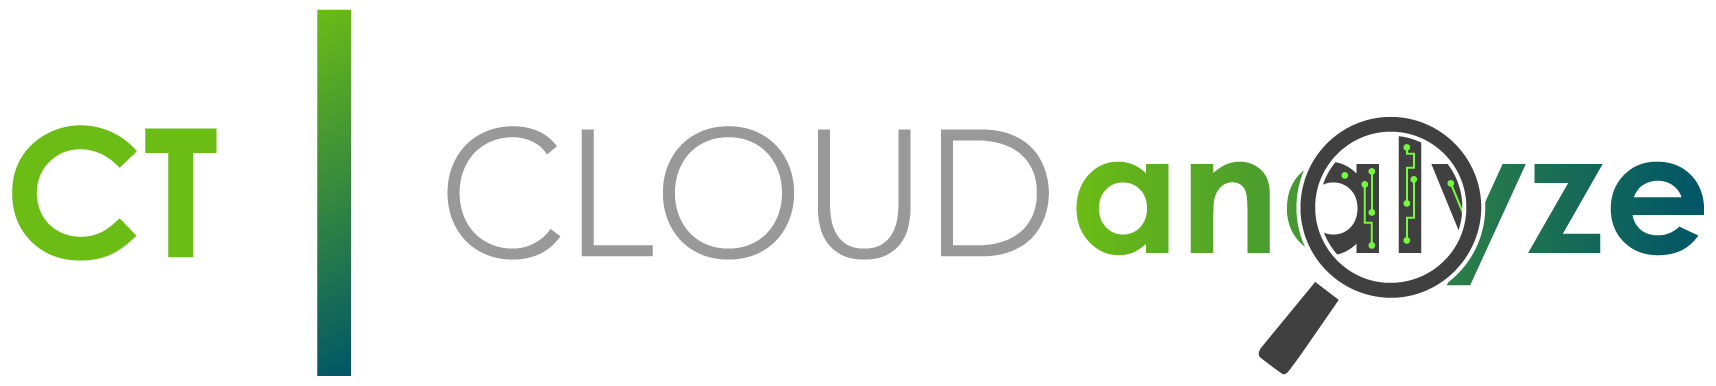 CT-Cloud-Analyze-Logo_v2